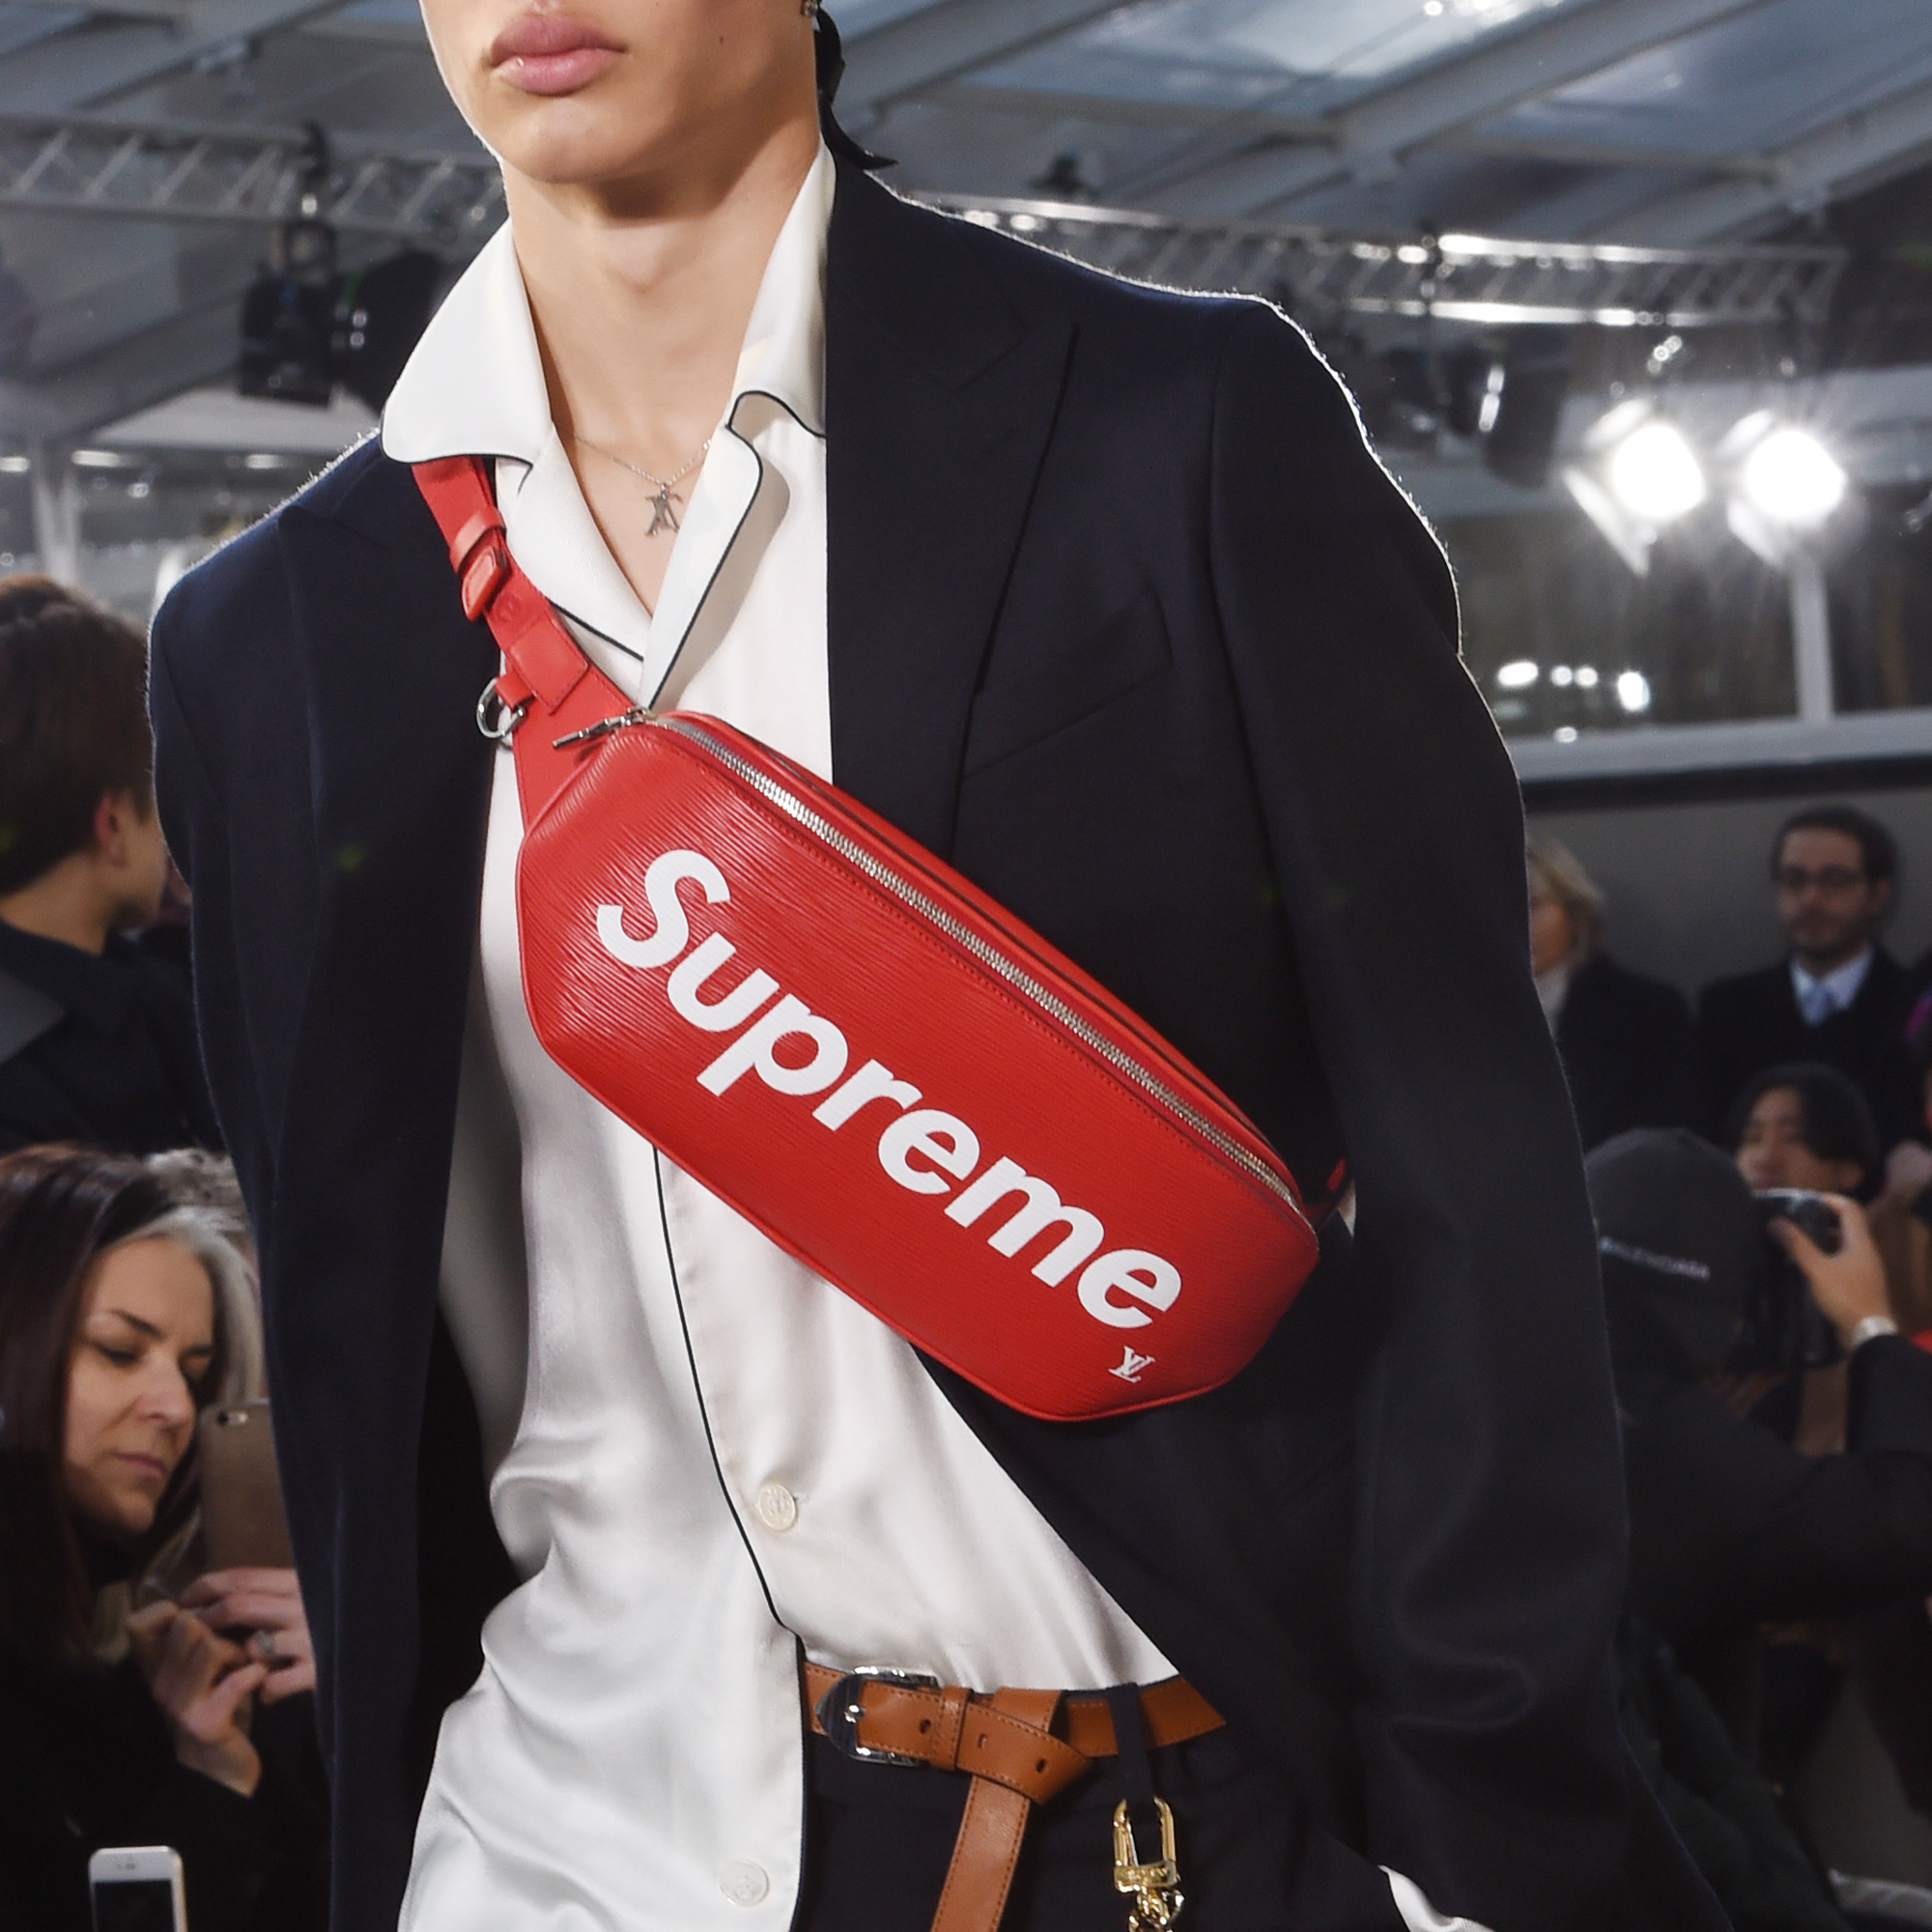 db9bfcf44910 Trend to try  Cross-body bags that are as cool as LV x Supreme s